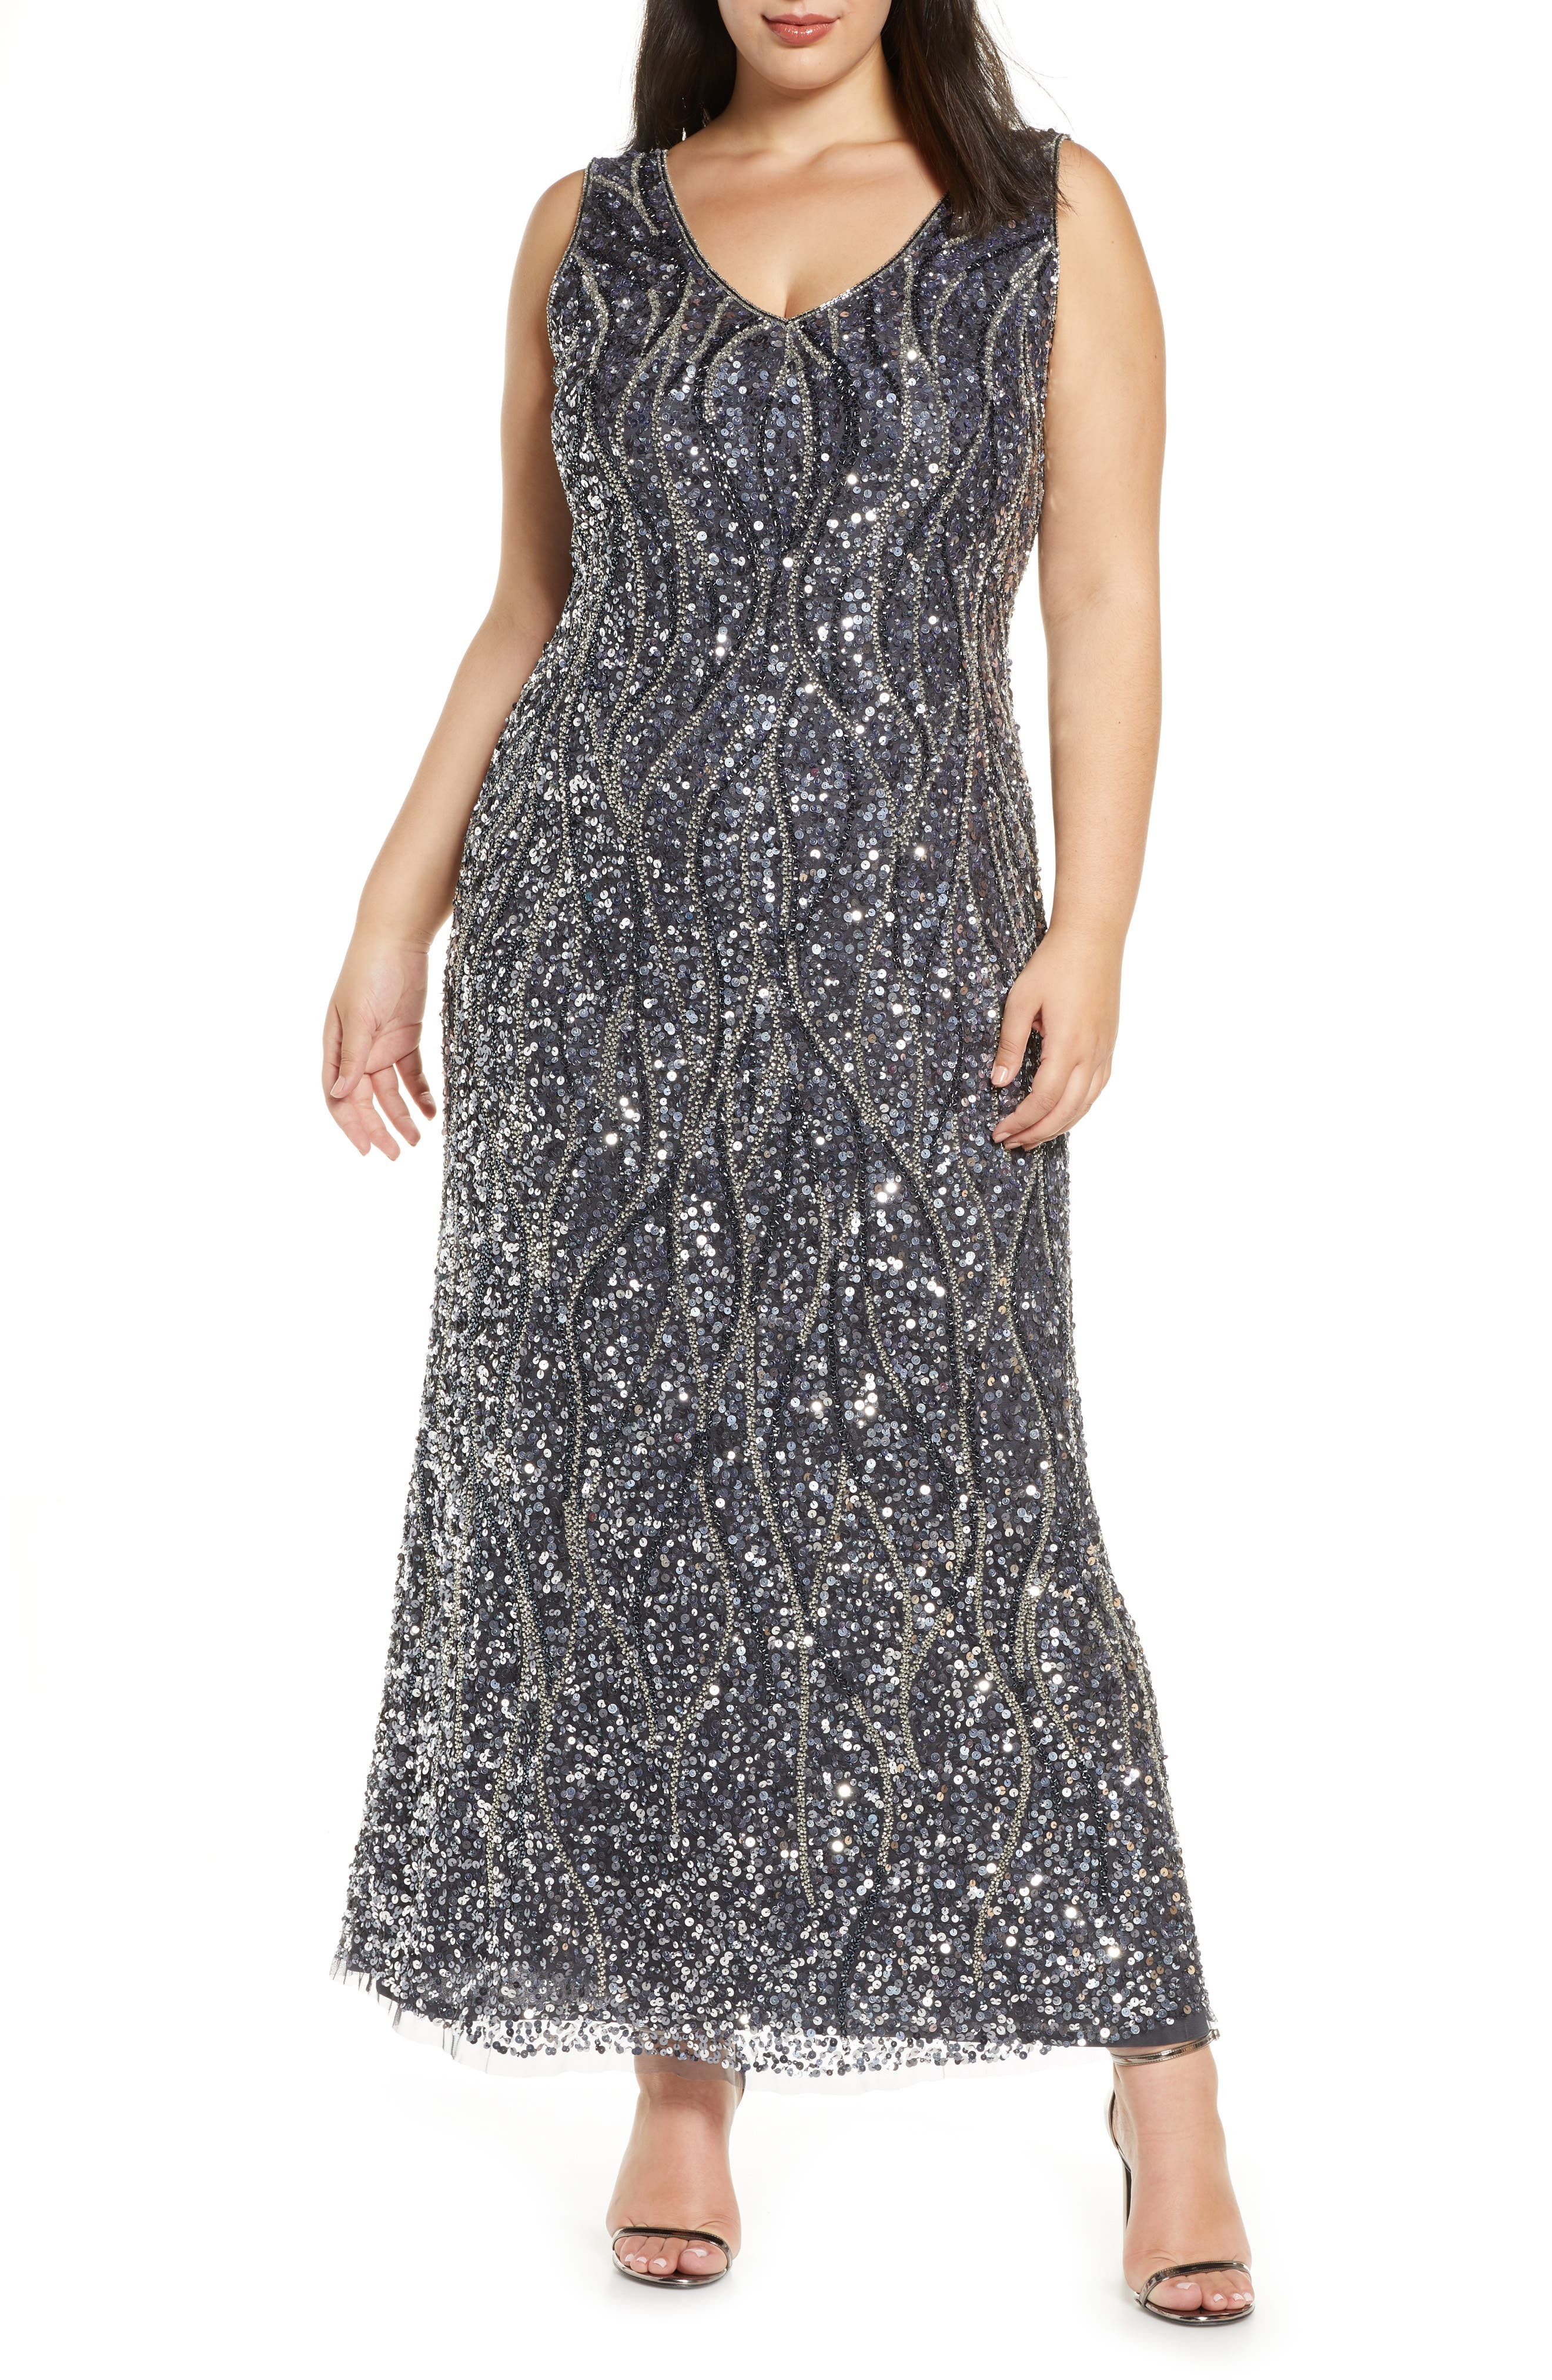 1920s Plus Size Flapper Dresses, Gatsby Dresses, Flapper Costumes Plus Size Womens Pisarro Nights Sequin  Bead Sleeveless Gown $268.00 AT vintagedancer.com